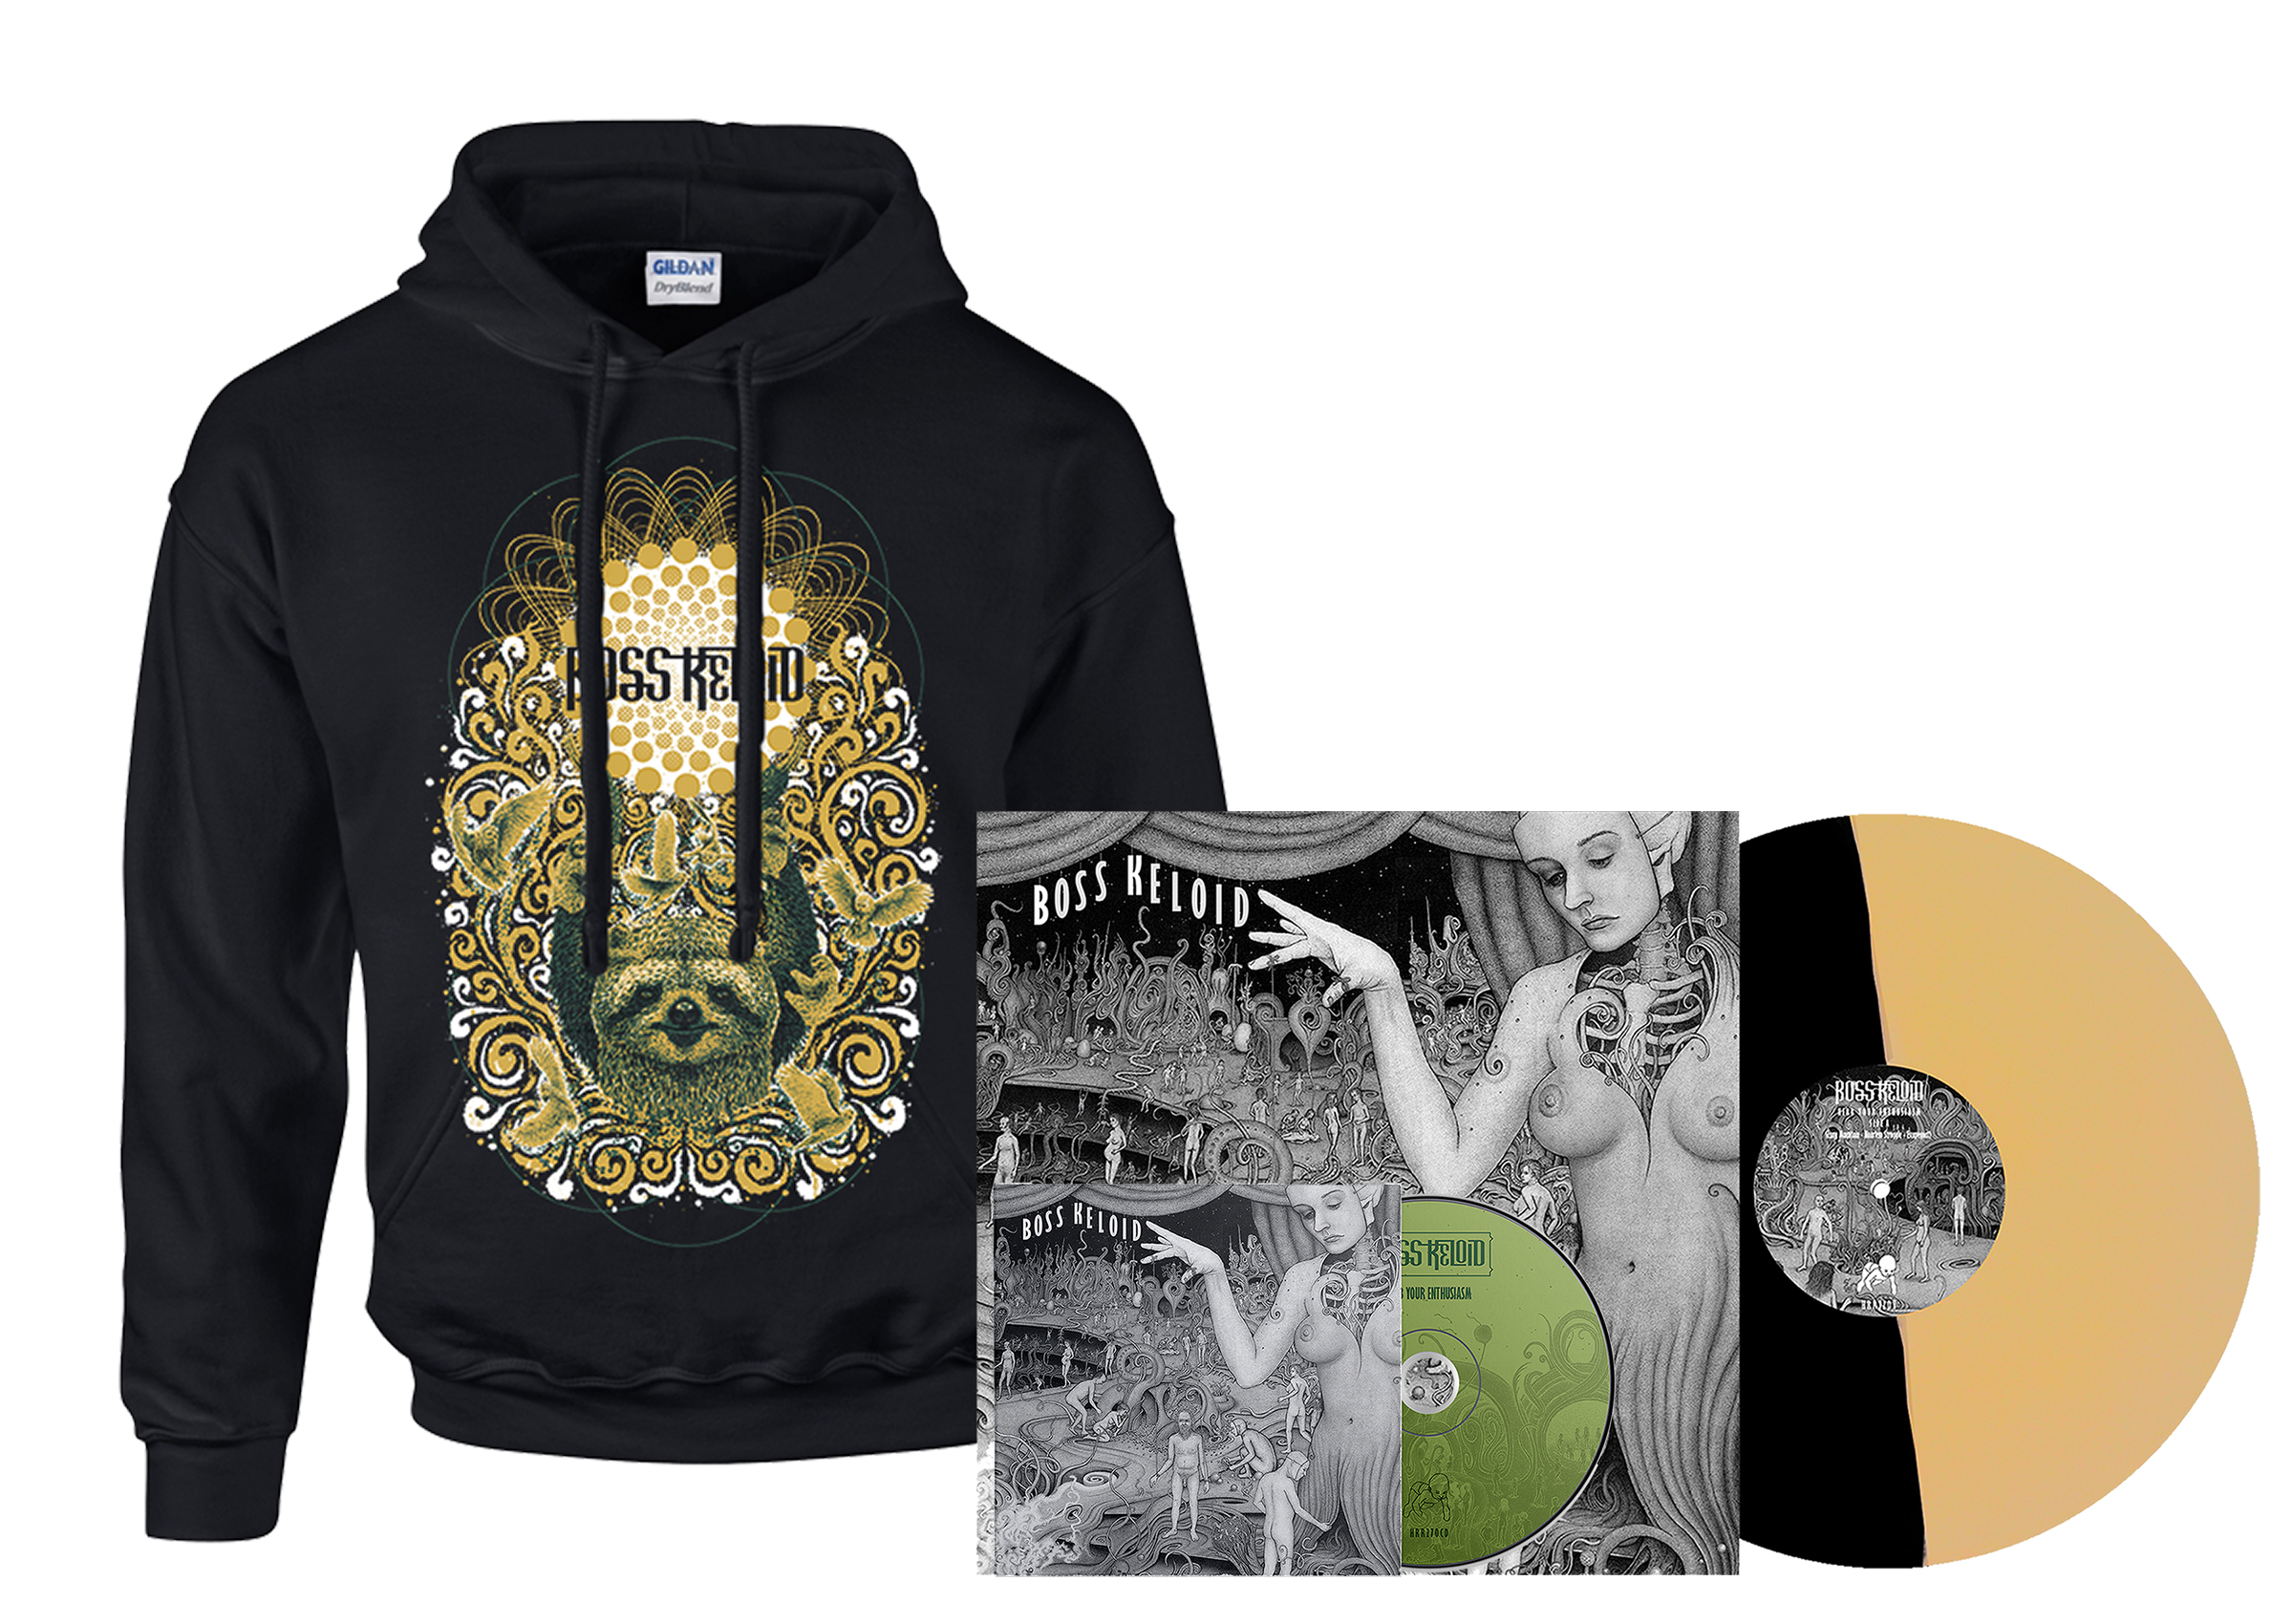 Boss Keloid - Herb Your Enthusiasm hoodie + 2xLP + CD